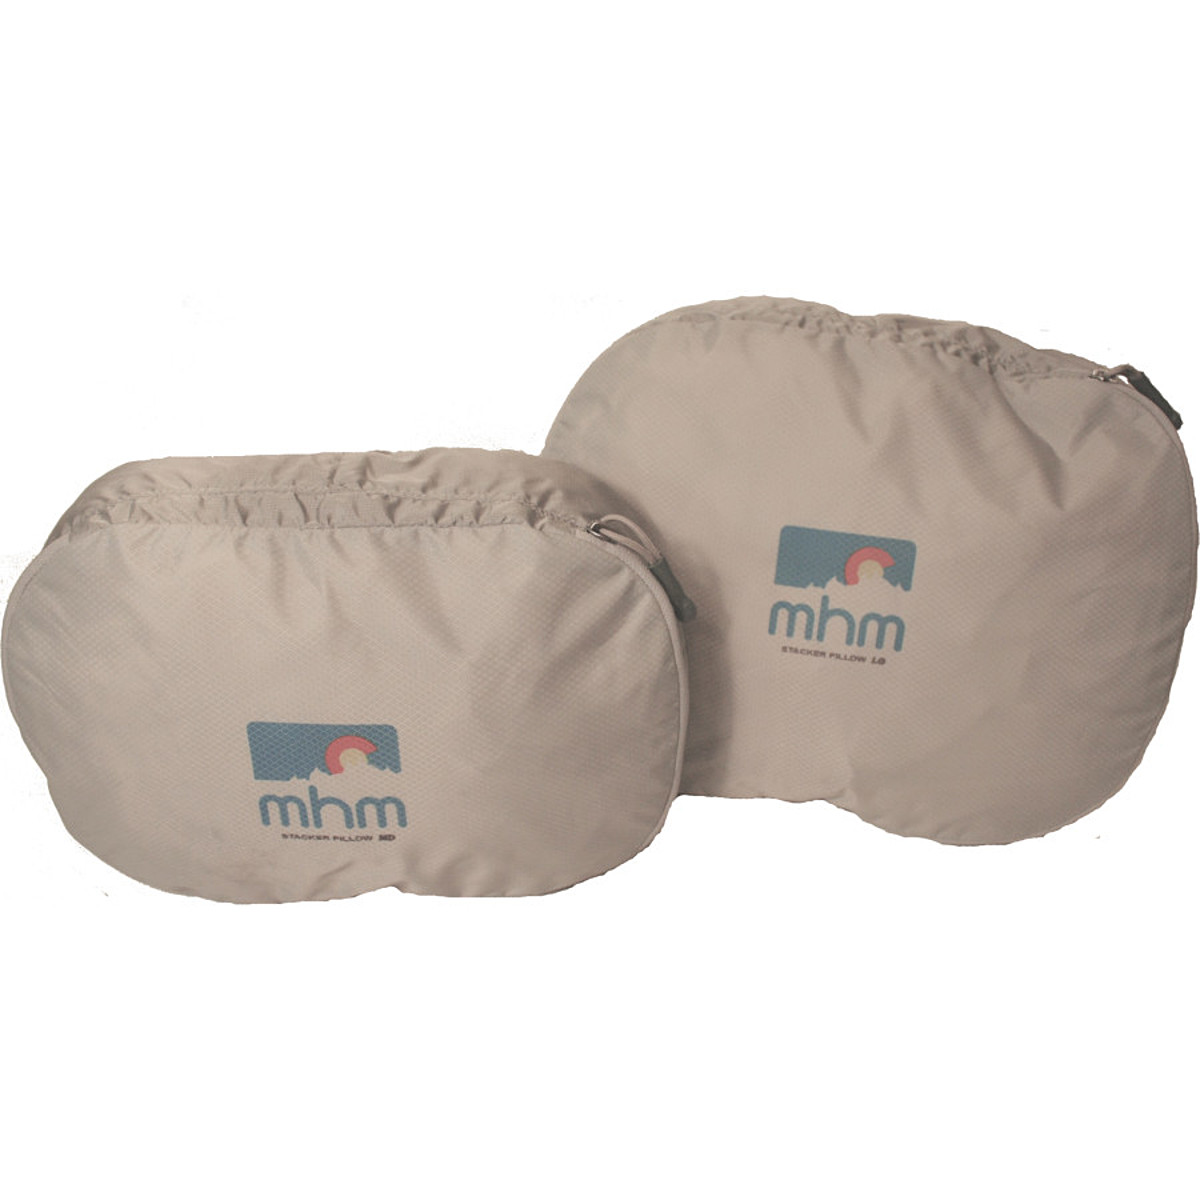 photo of a Mile High Mountaineering pillow